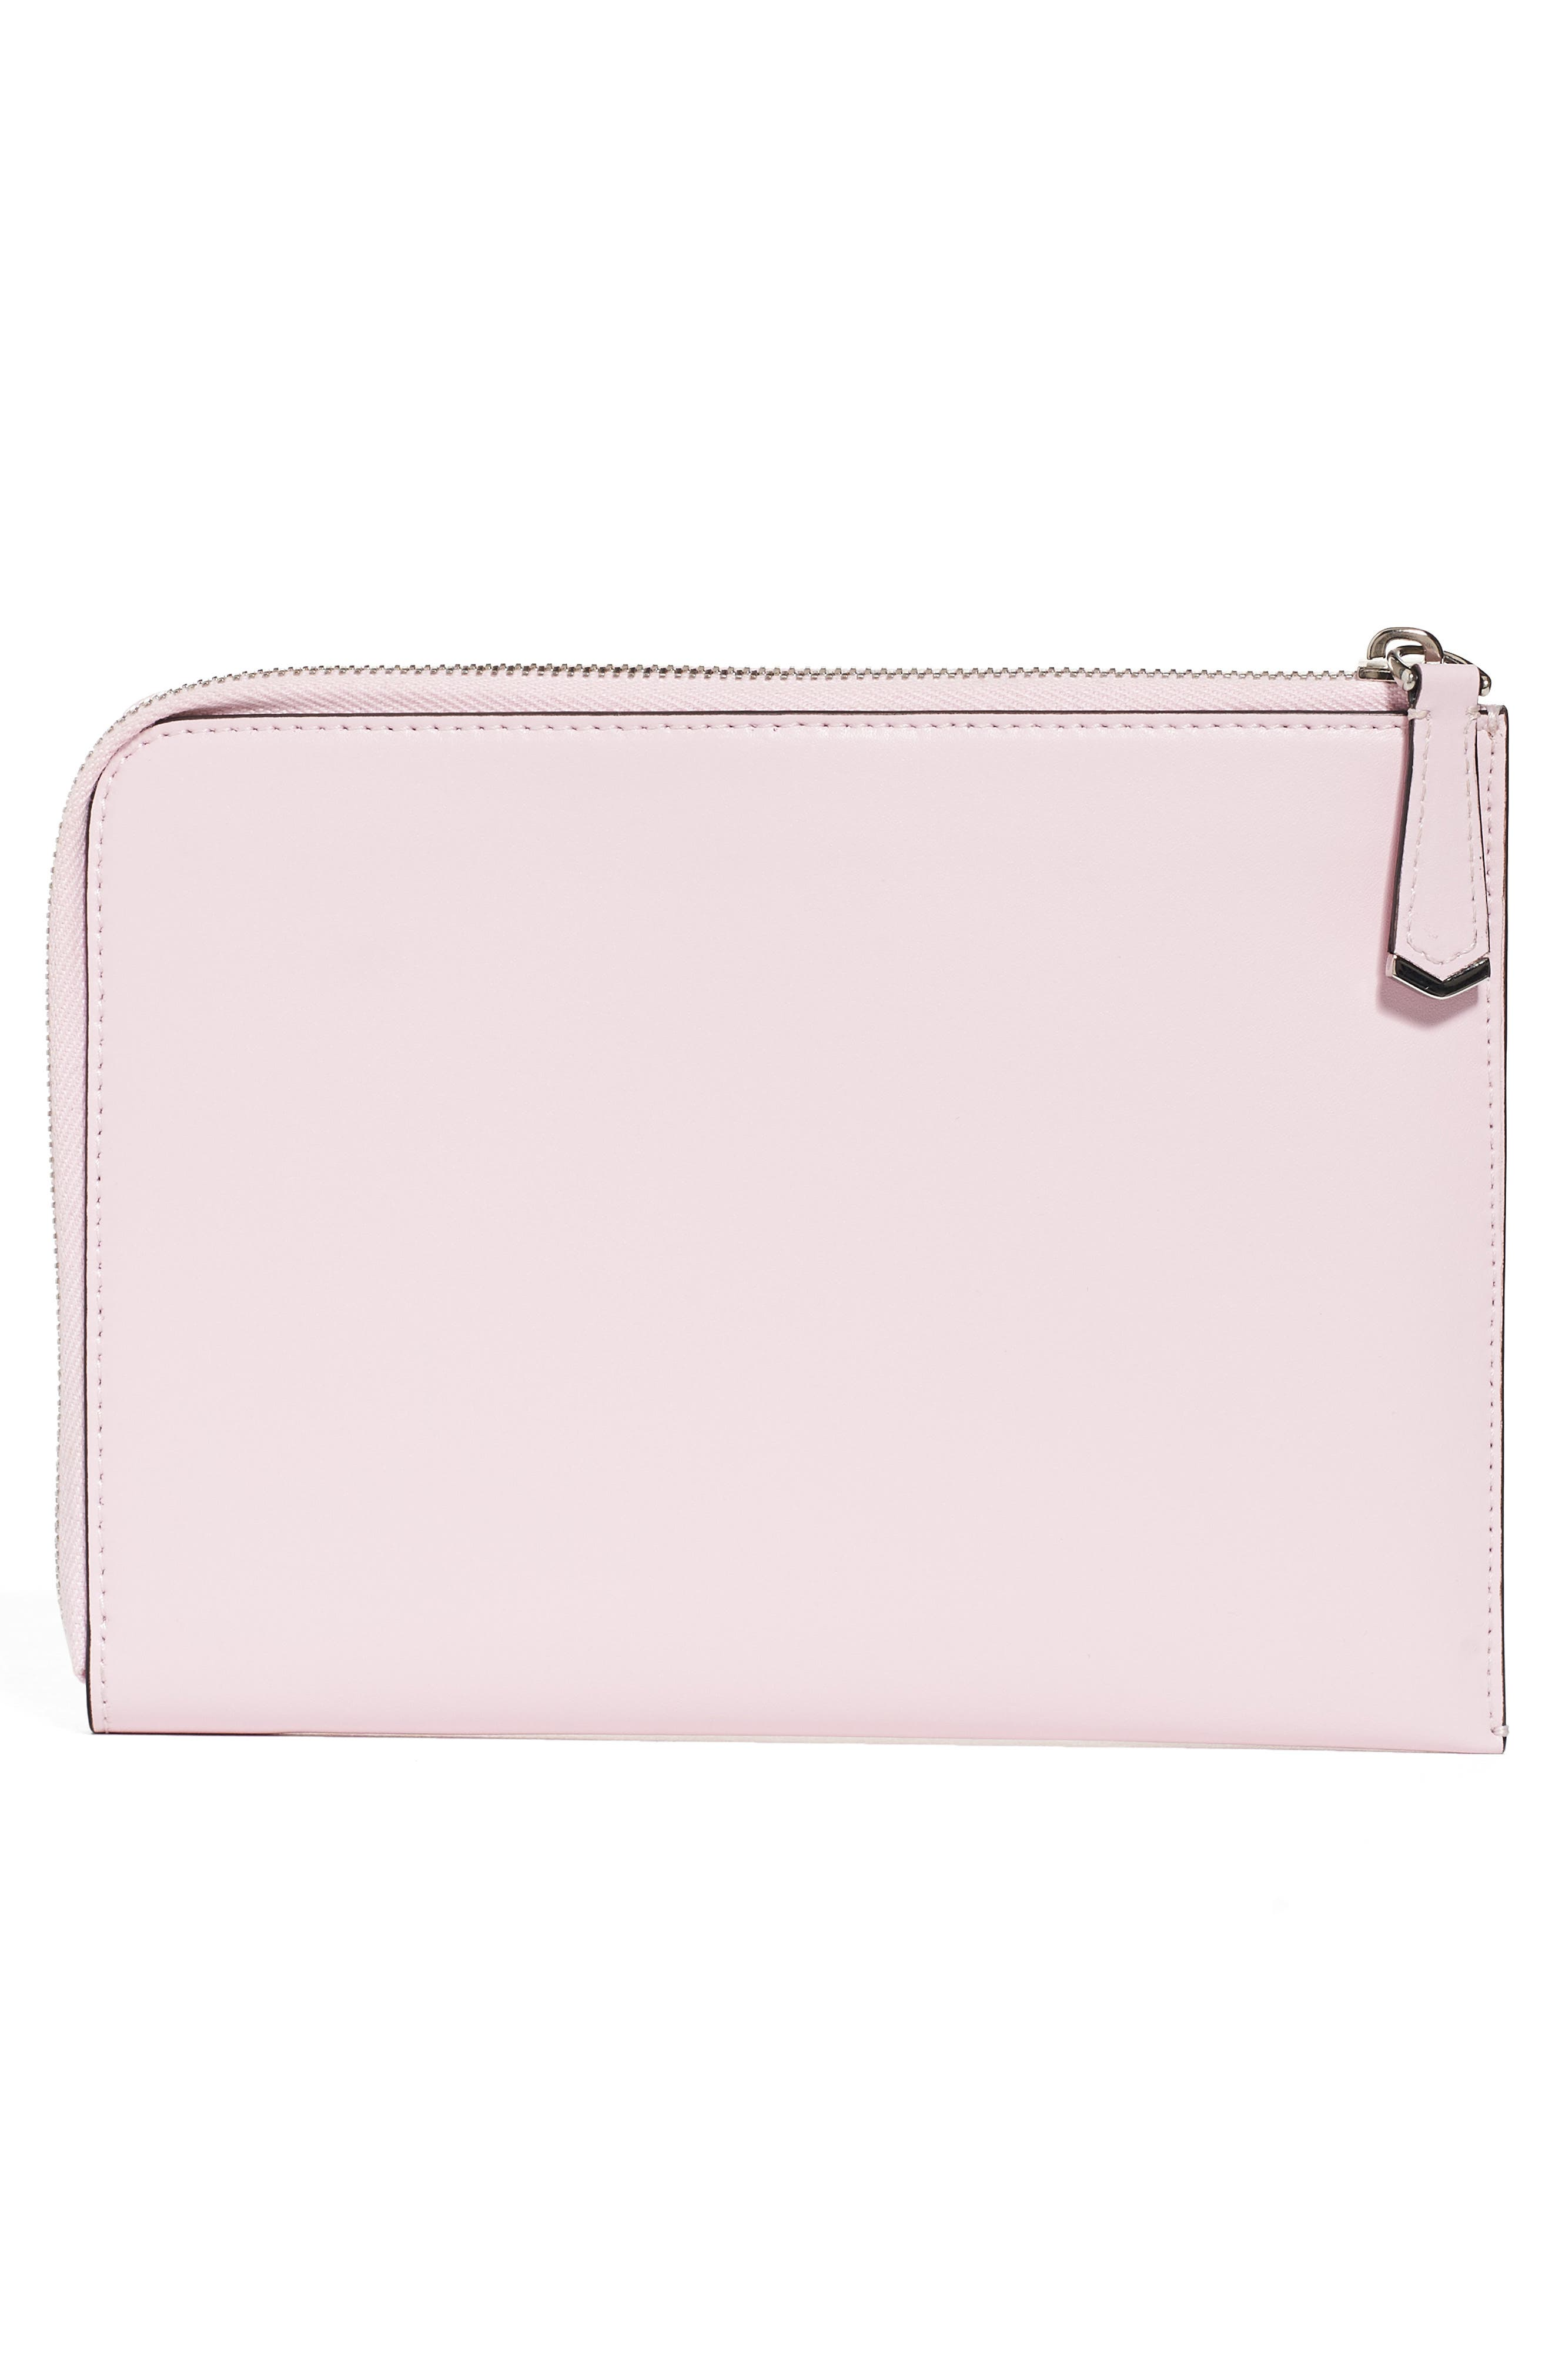 Small Multistud Leather Pouch,                             Main thumbnail 1, color,                             687